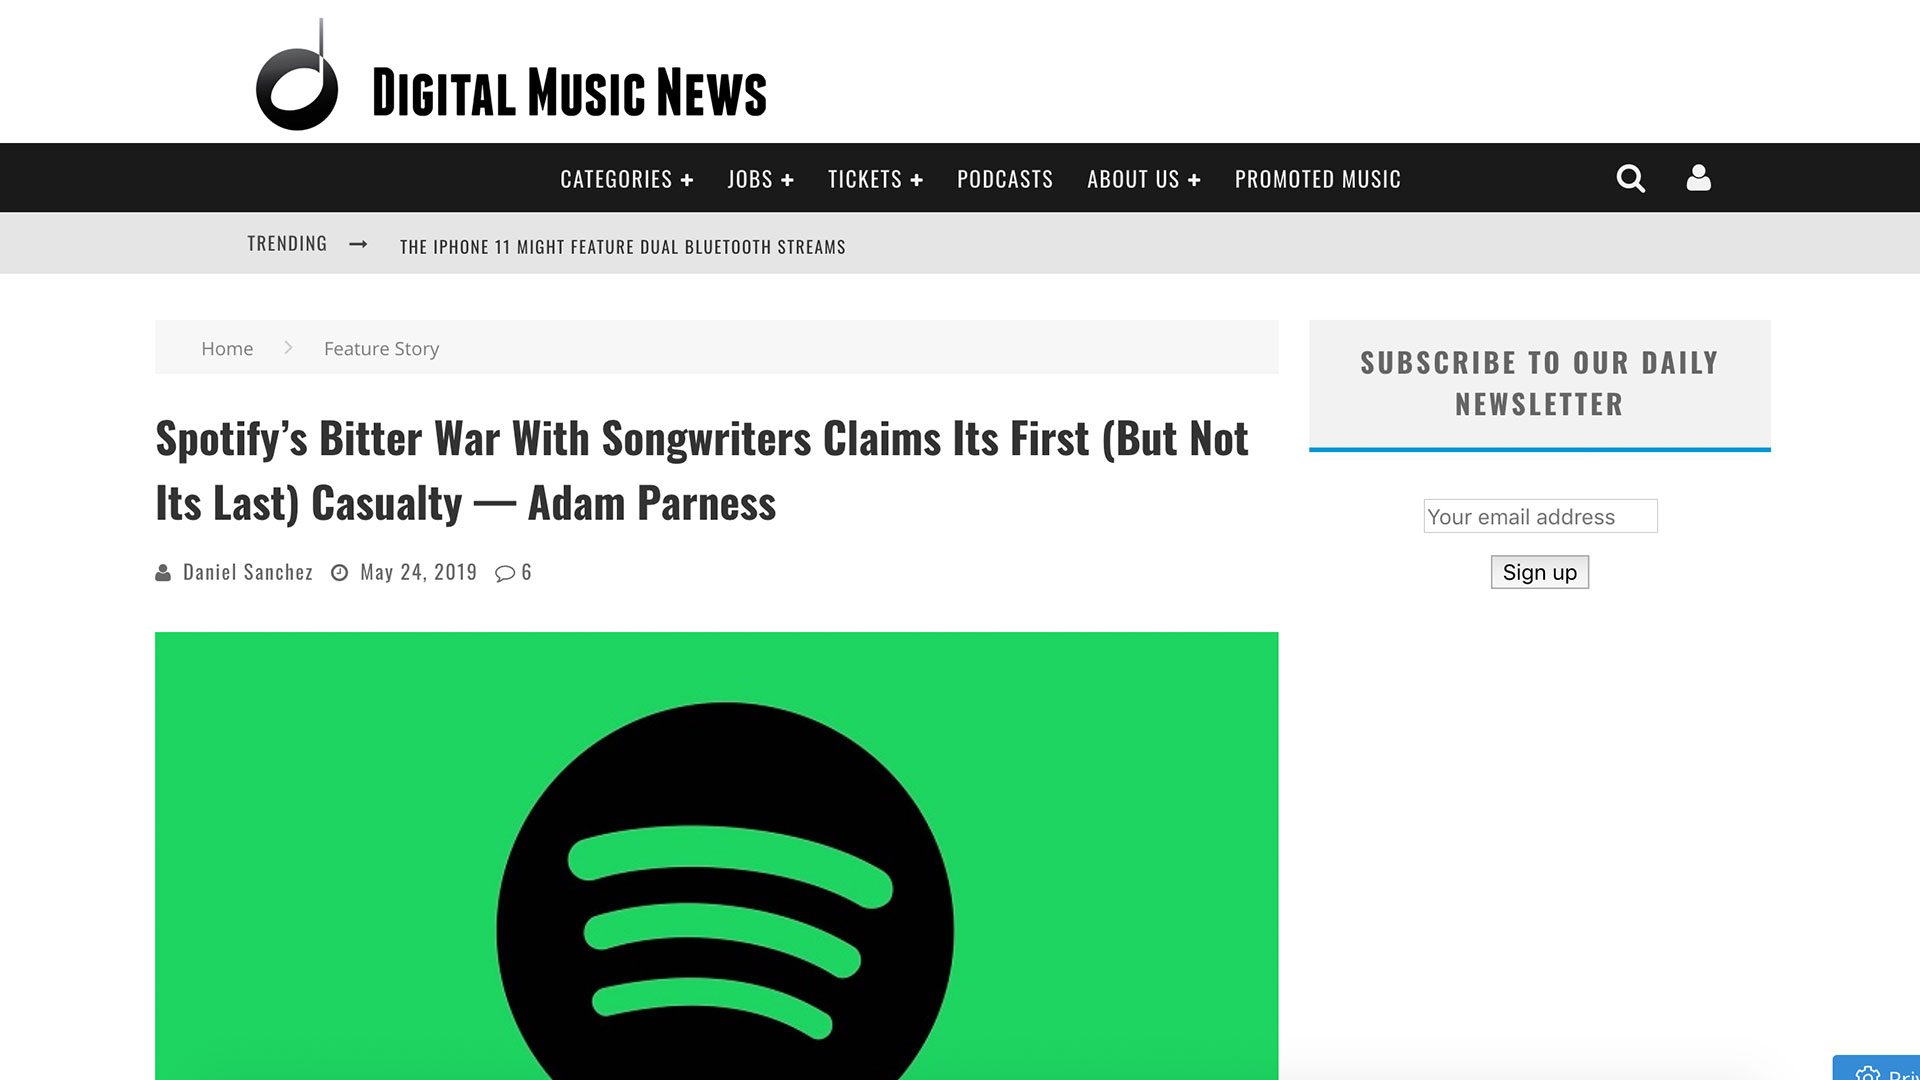 Fairness Rocks News Spotify's Bitter War With Songwriters Claims Its First (But Not Its Last) Casualty — Adam Parness